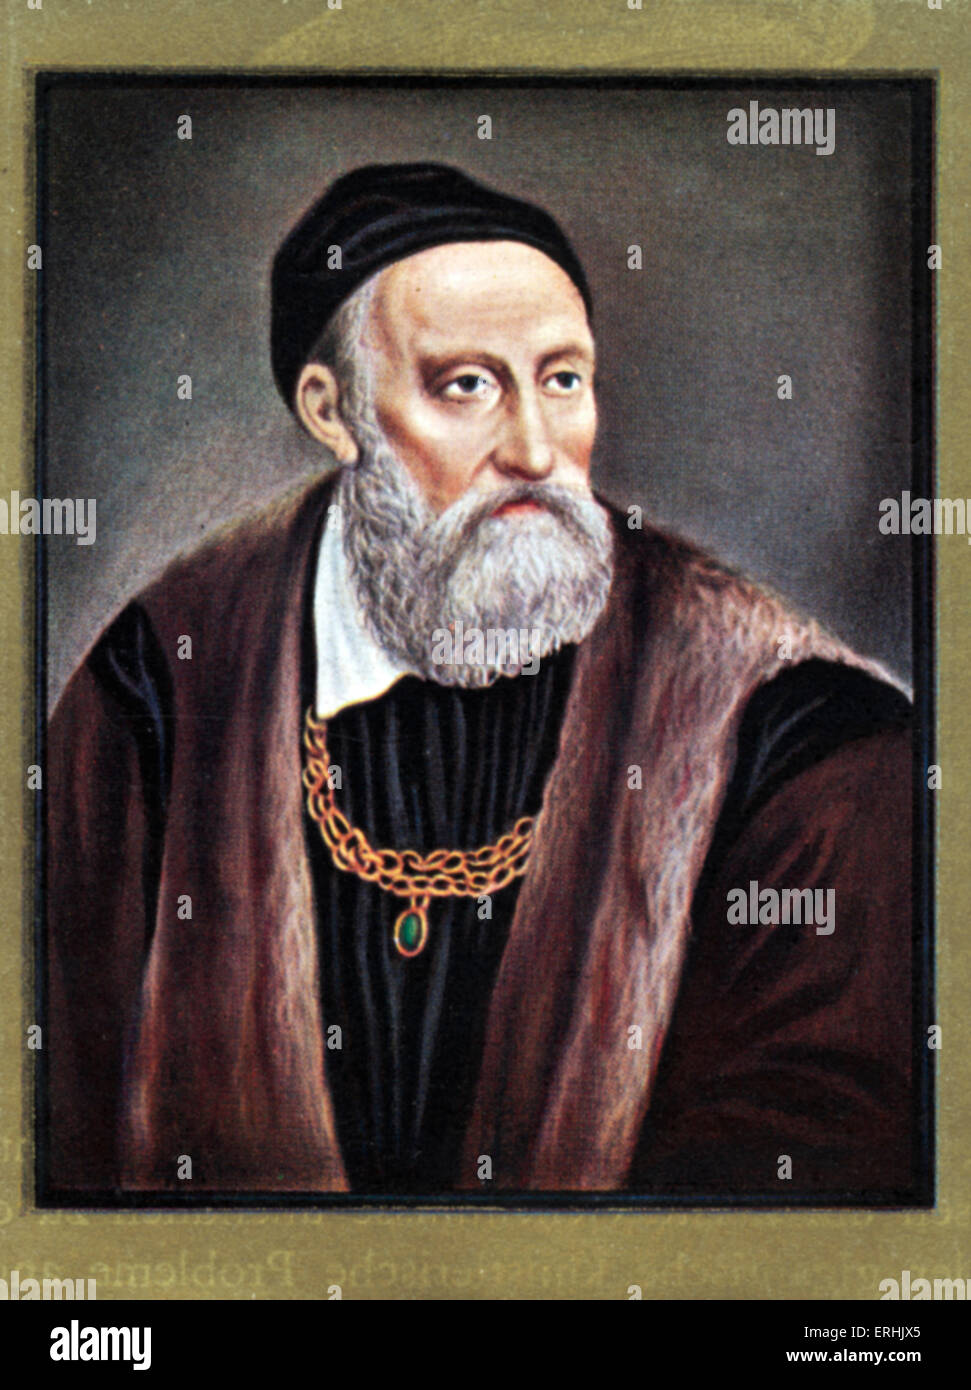 Tiziano Vecelli or Vecellio. Portrait of the Italian painter. Better known as Titian. c. 1488-90 – August 27, 1576 - Stock Image